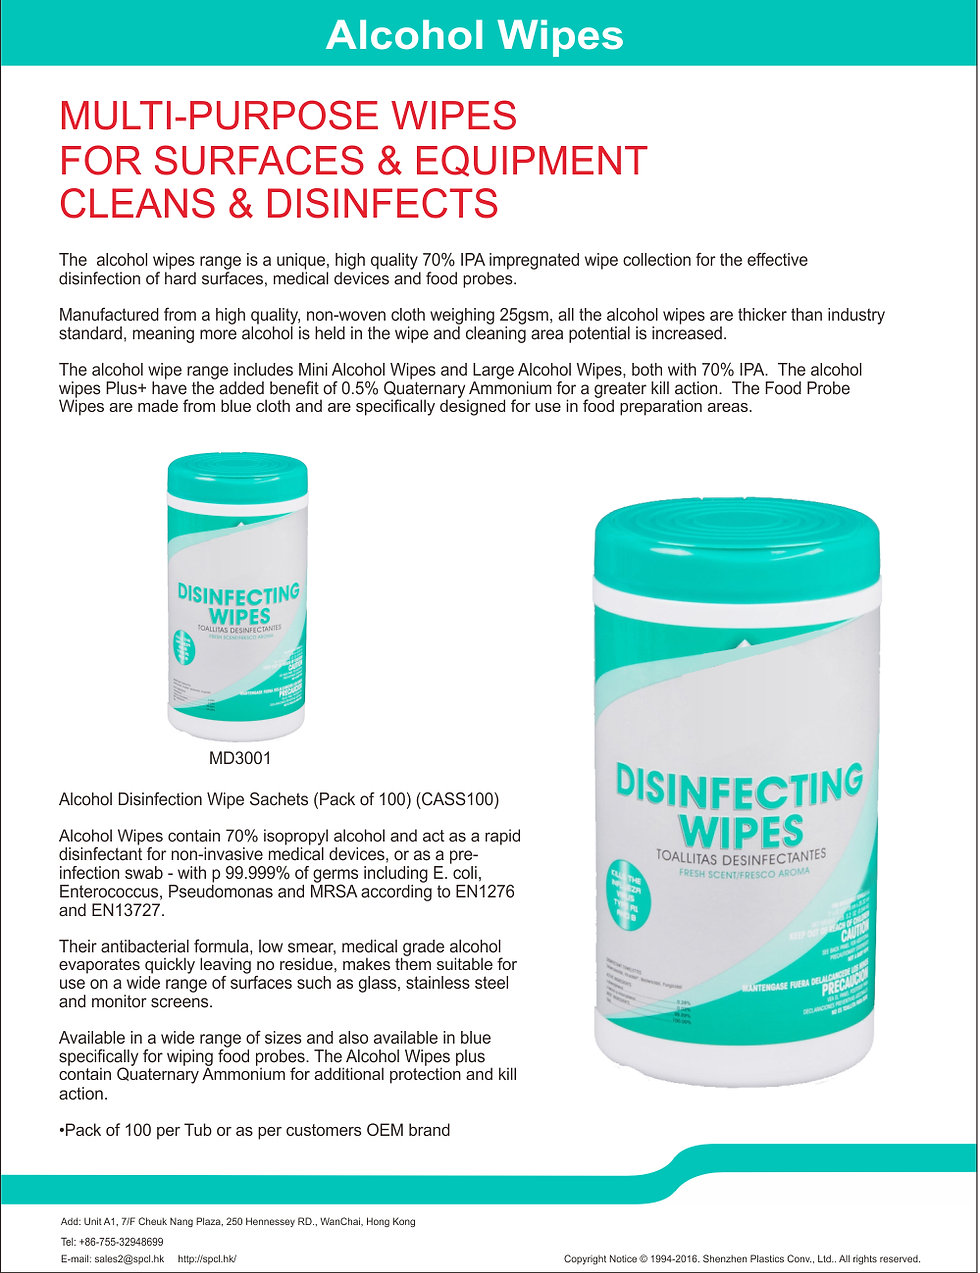 Surface Wipes for Disinfecting Surfaces